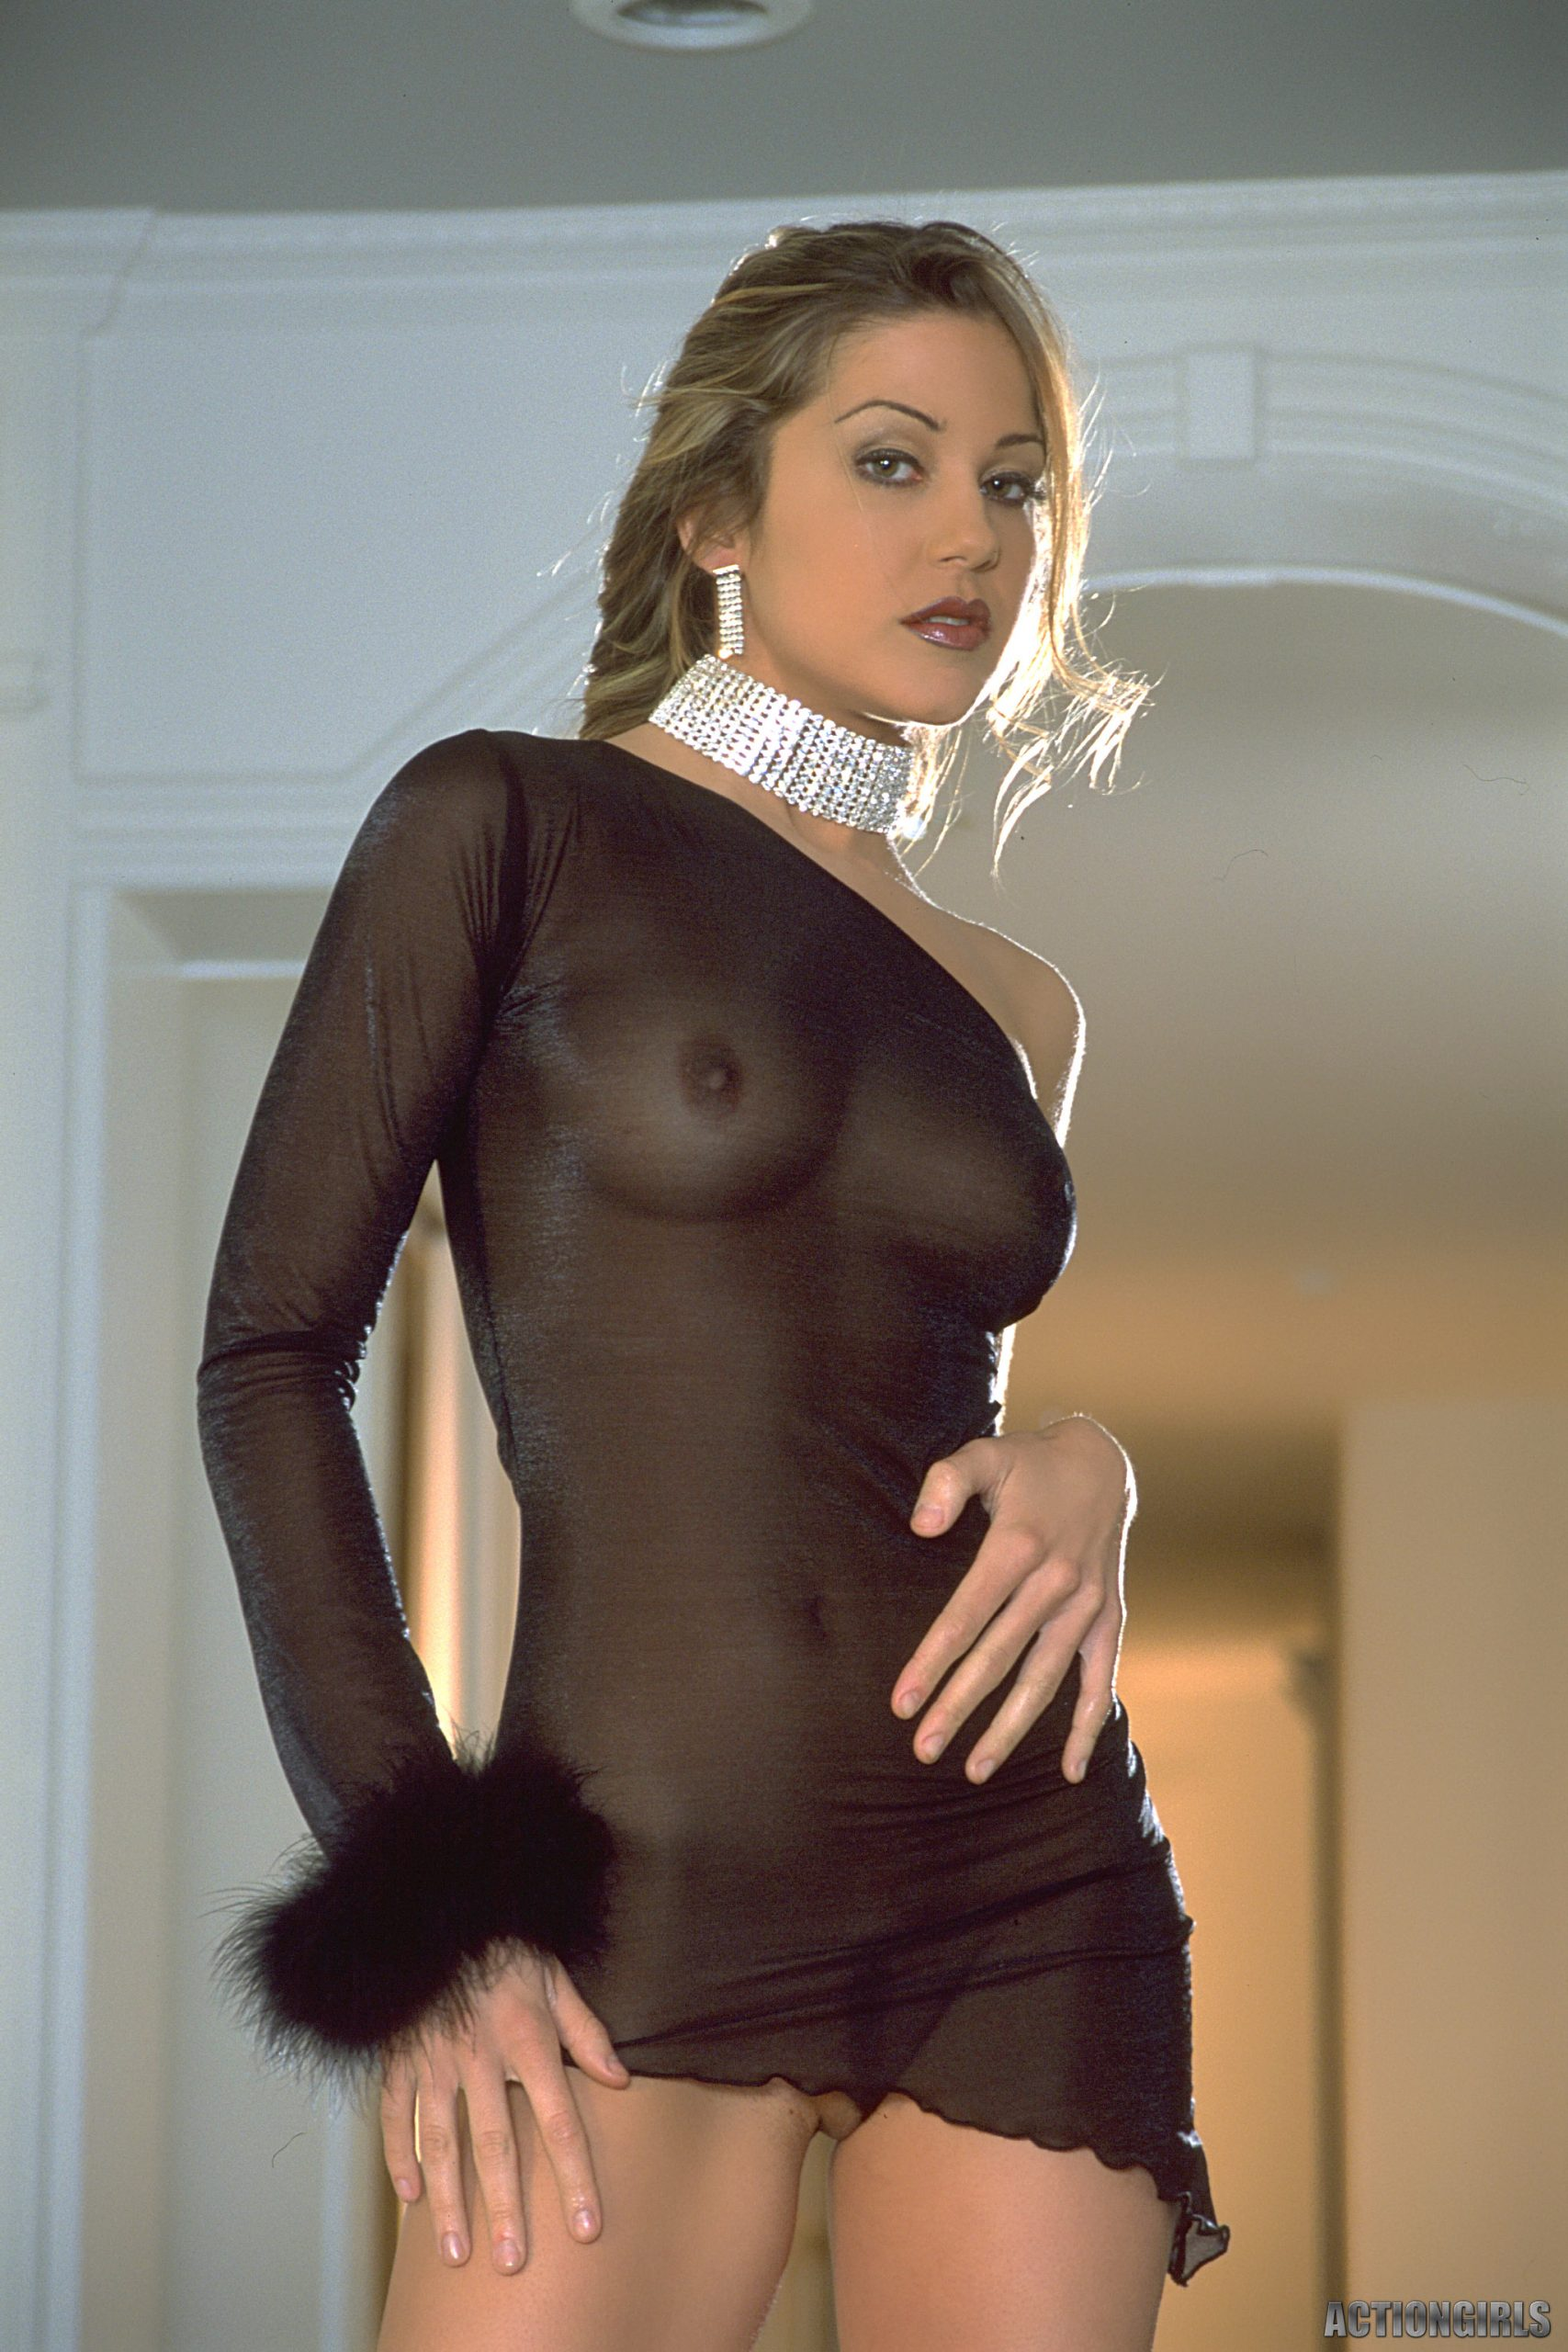 Lexy West Nice Tits Glamour Babe for Actiongirls